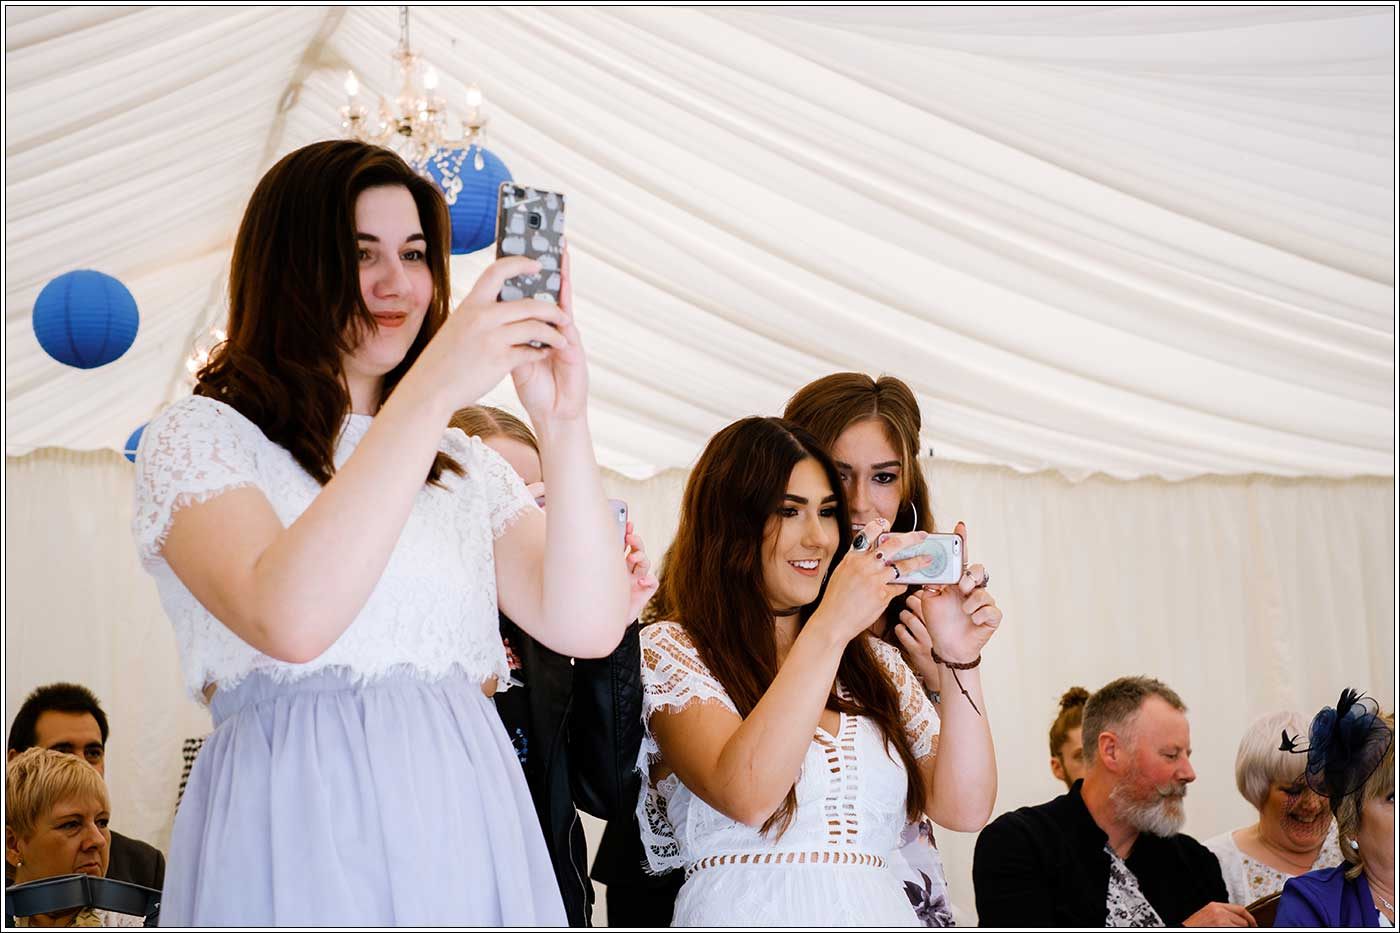 Guests taking photos of bride and groom